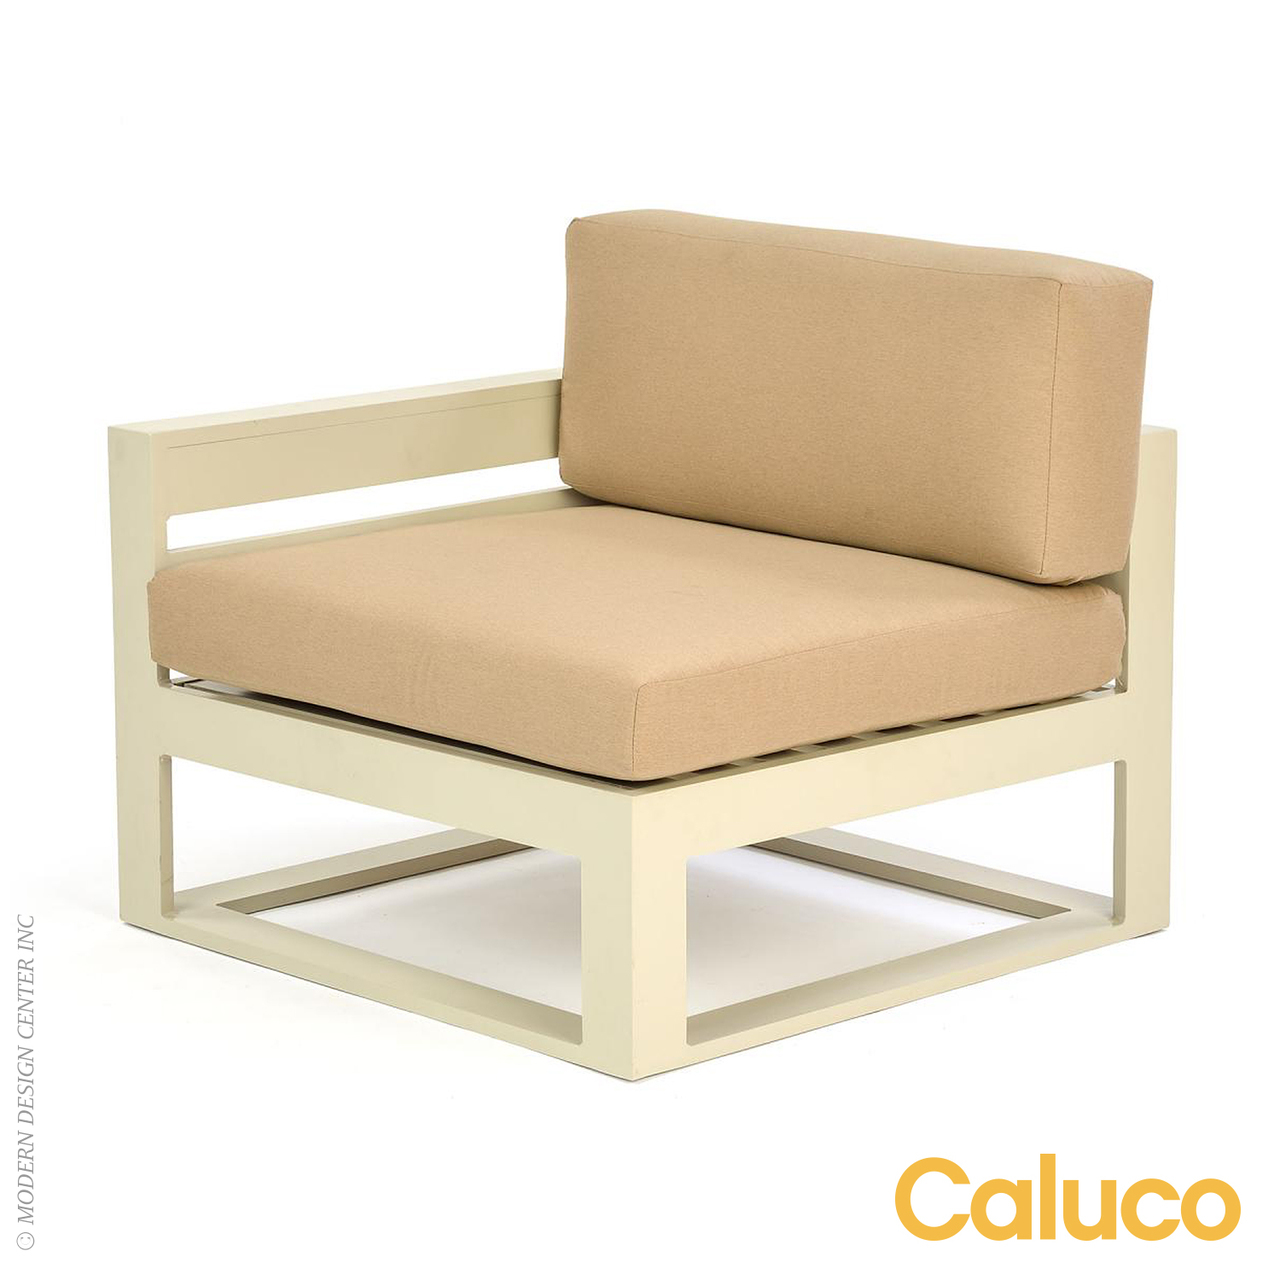 Space Sectional Right | Caluco Patio Furniture